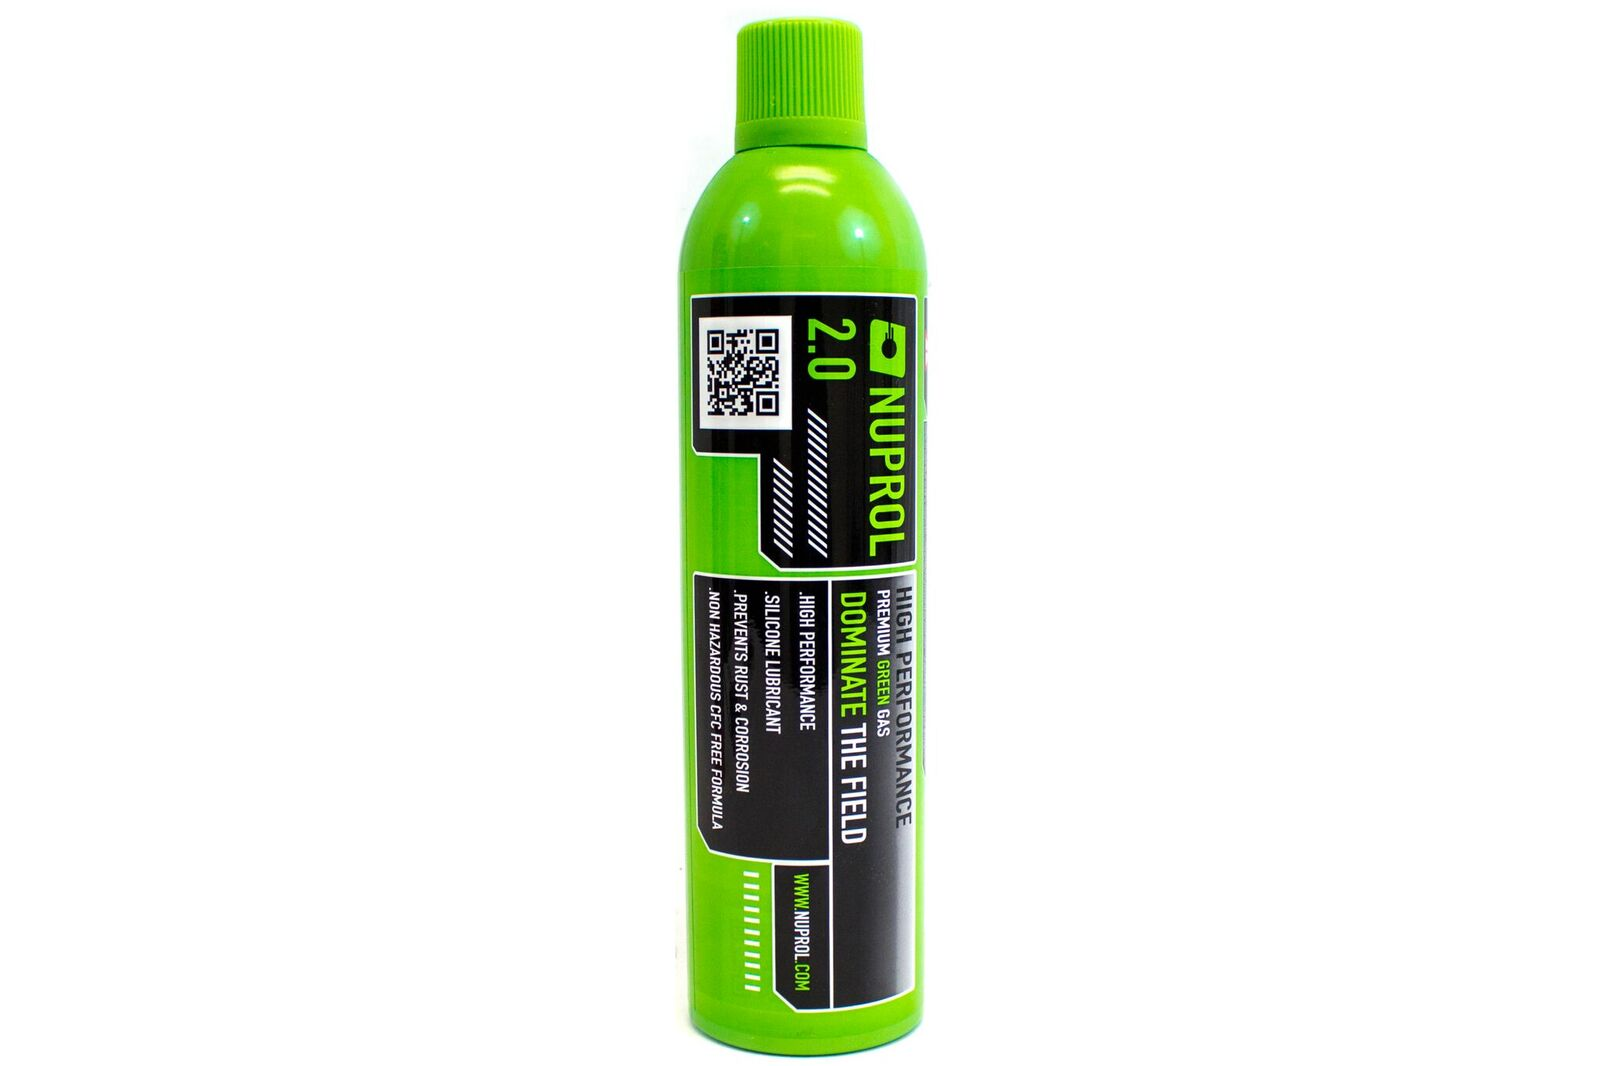 Nuprol 2.0 Green Gas product image